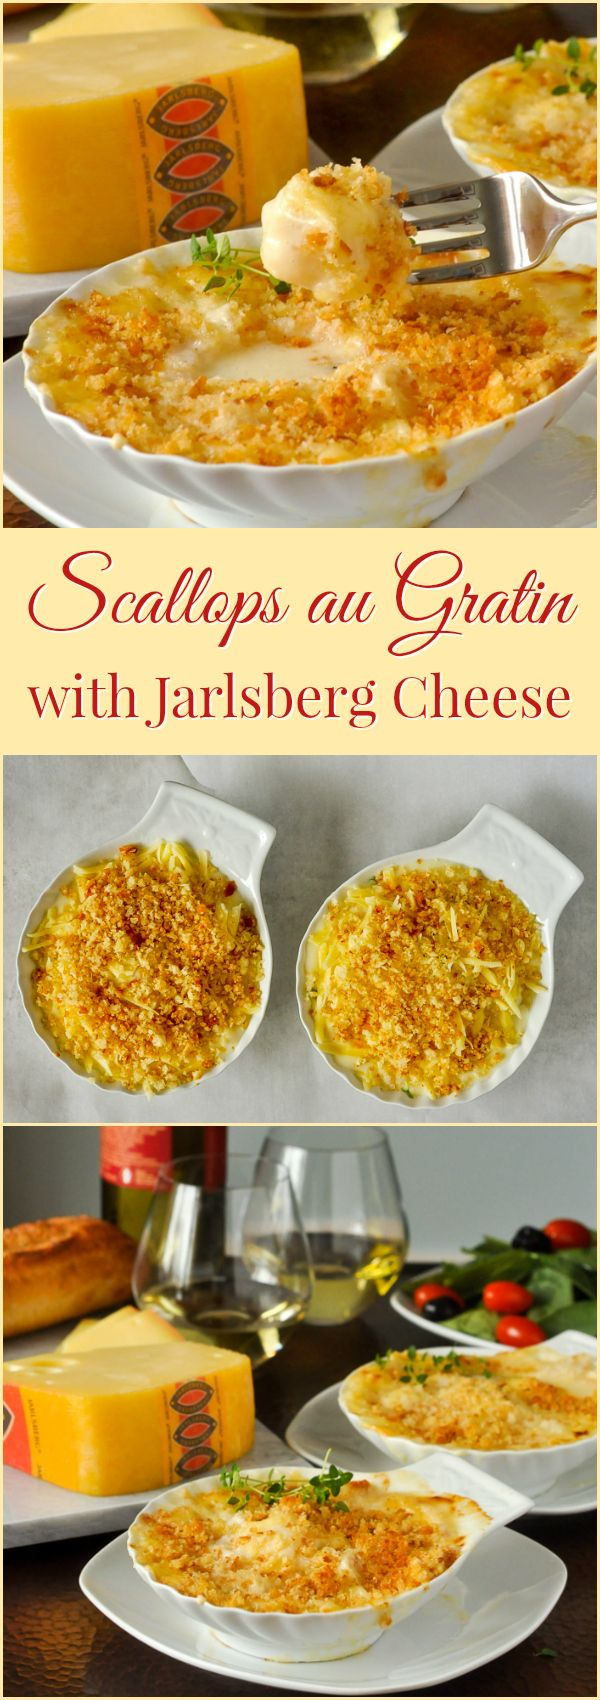 Scallops au Gratin with Jarlsberg Cheese, an indulgently delicious appetizer course or served with a side salad & crusty bread for a special lunchtime meal.